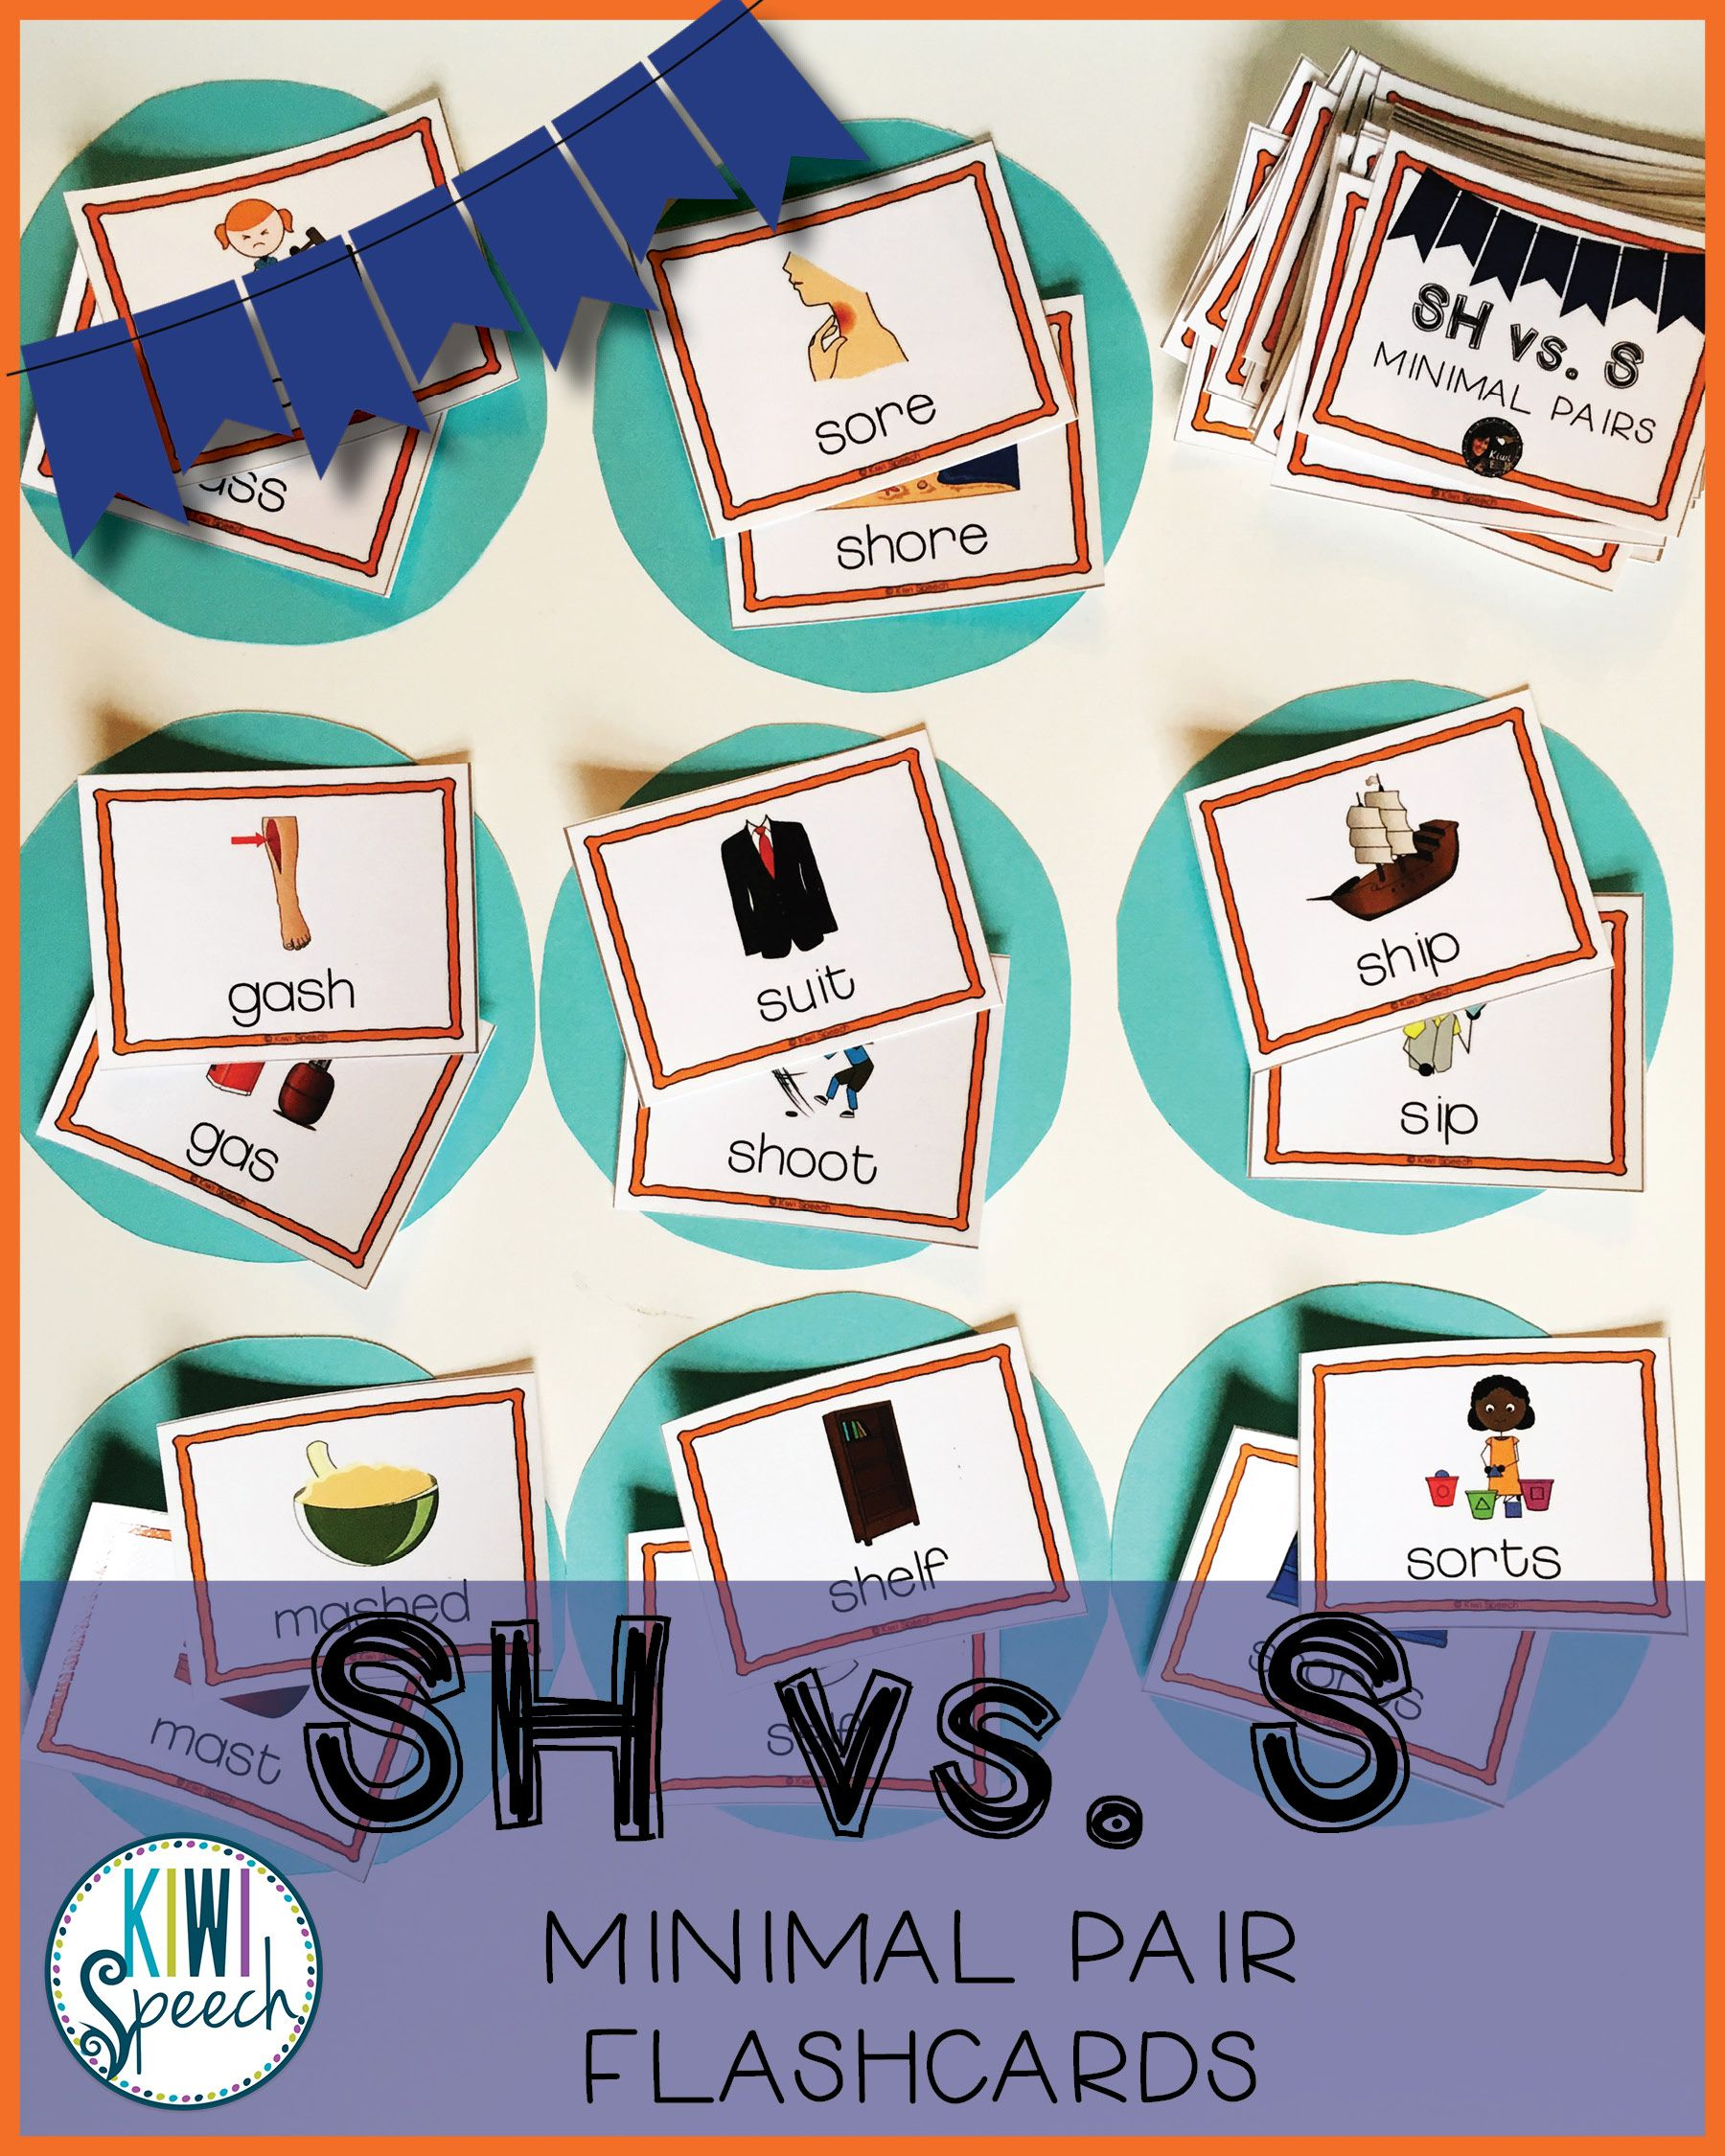 Sh Vs S Minimal Pair Flashcards Articulation And